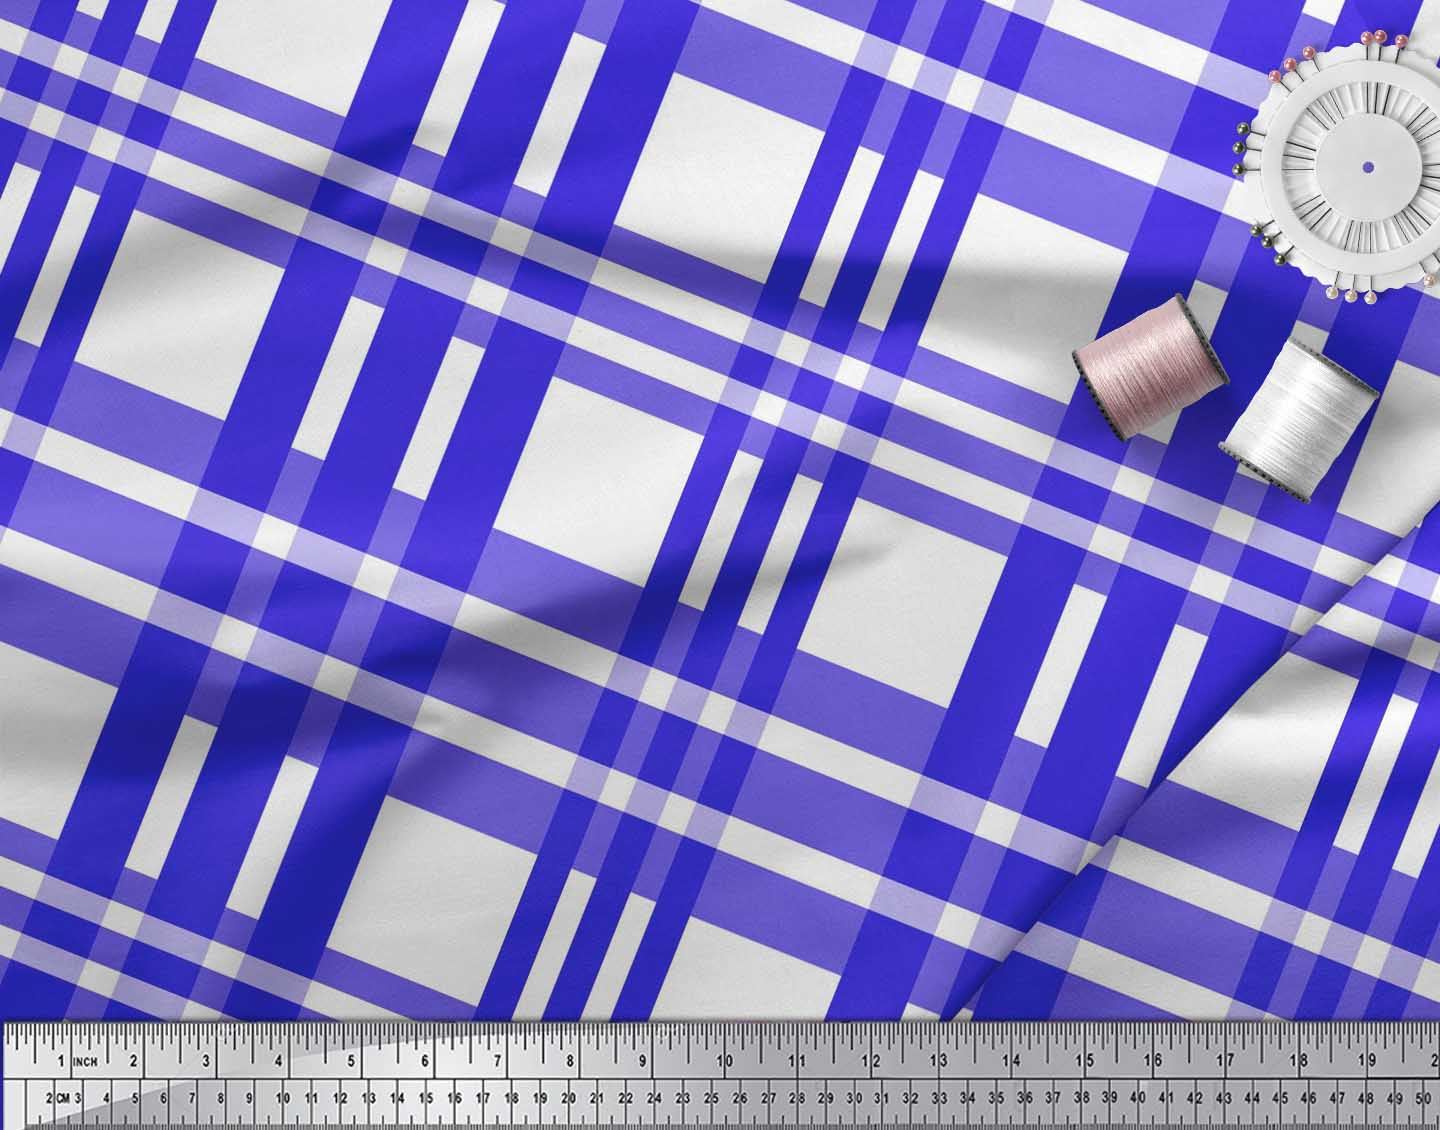 Soimoi-Blue-Cotton-Poplin-Fabric-Plaid-Check-Print-Sewing-Fabric-Ww2 thumbnail 4